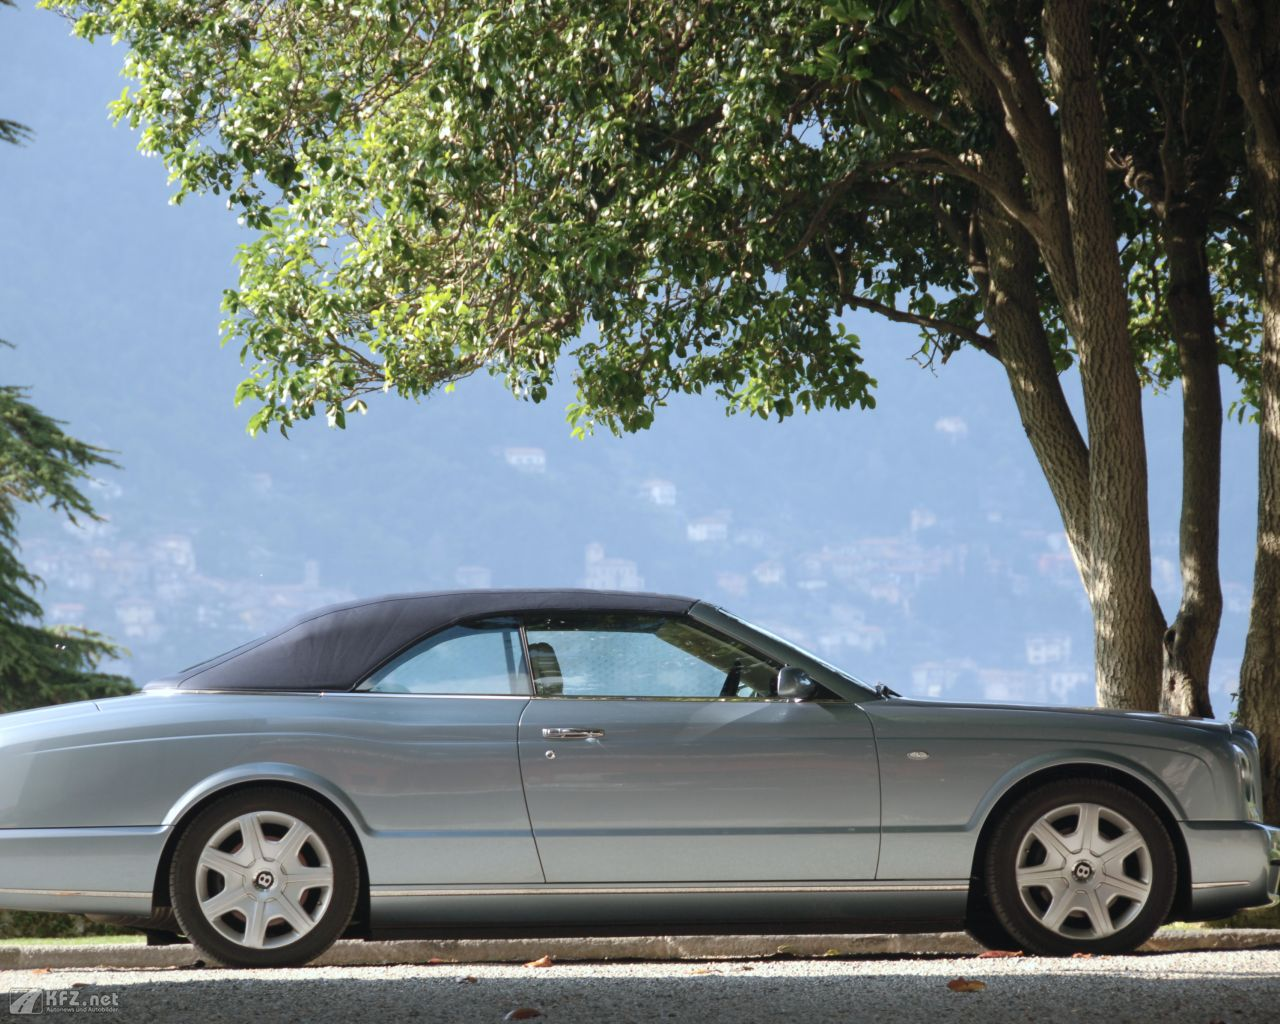 bentley-azure-1280x1024-18